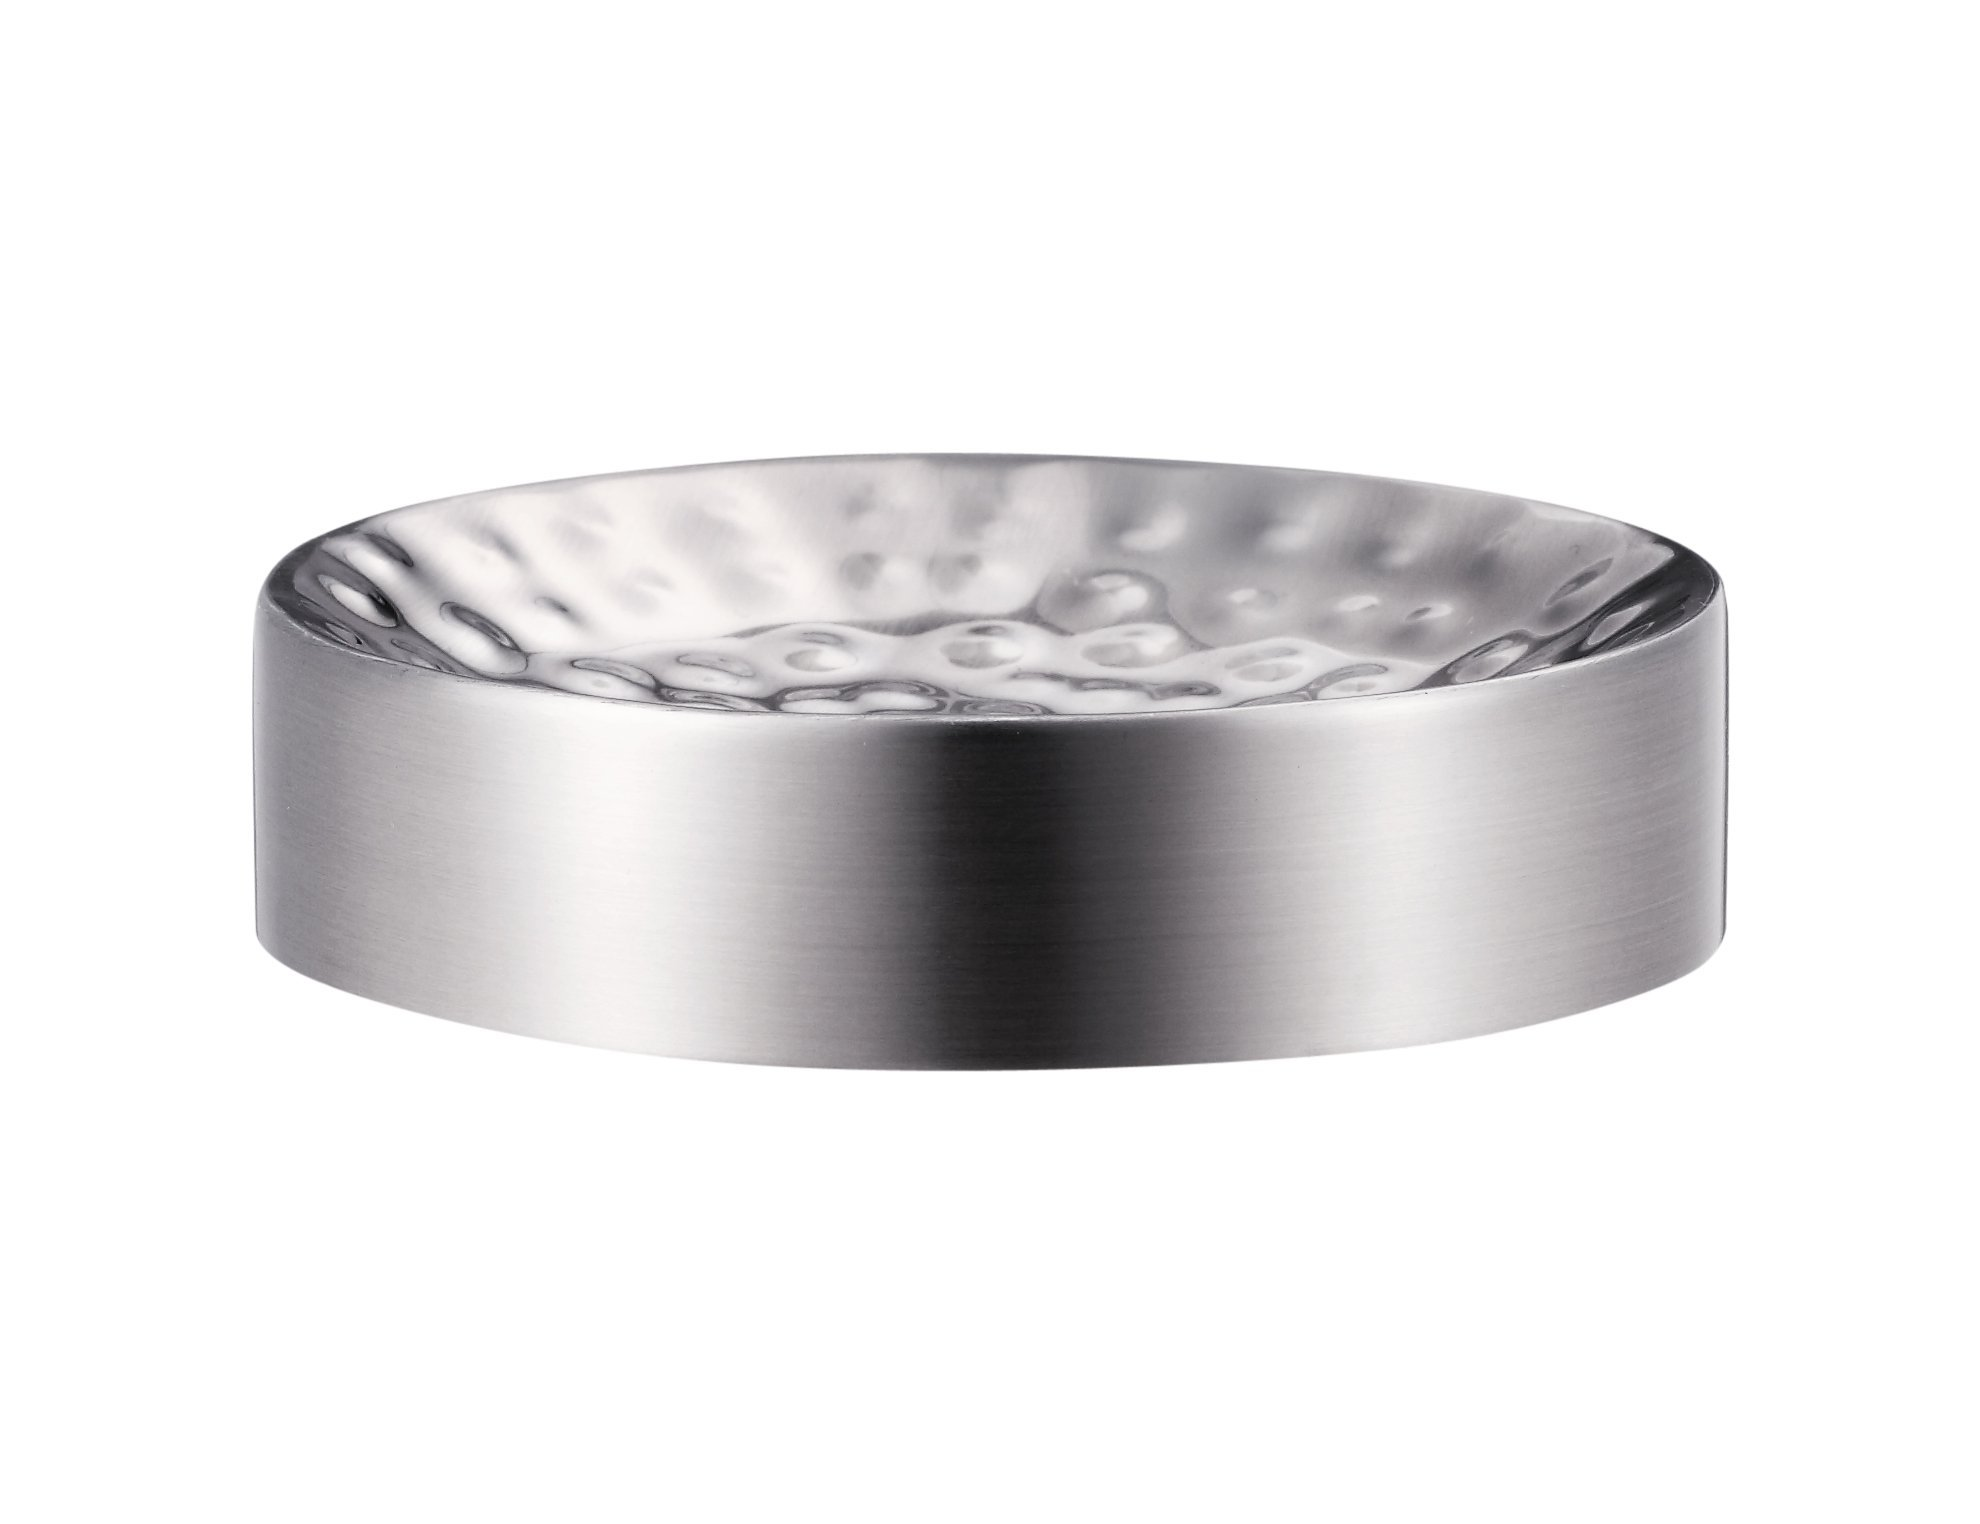 Five Queens Court Parker Metal Bathroom Accessories Collection - Soap Dish - In Silver or Oil Rubbed Bronze